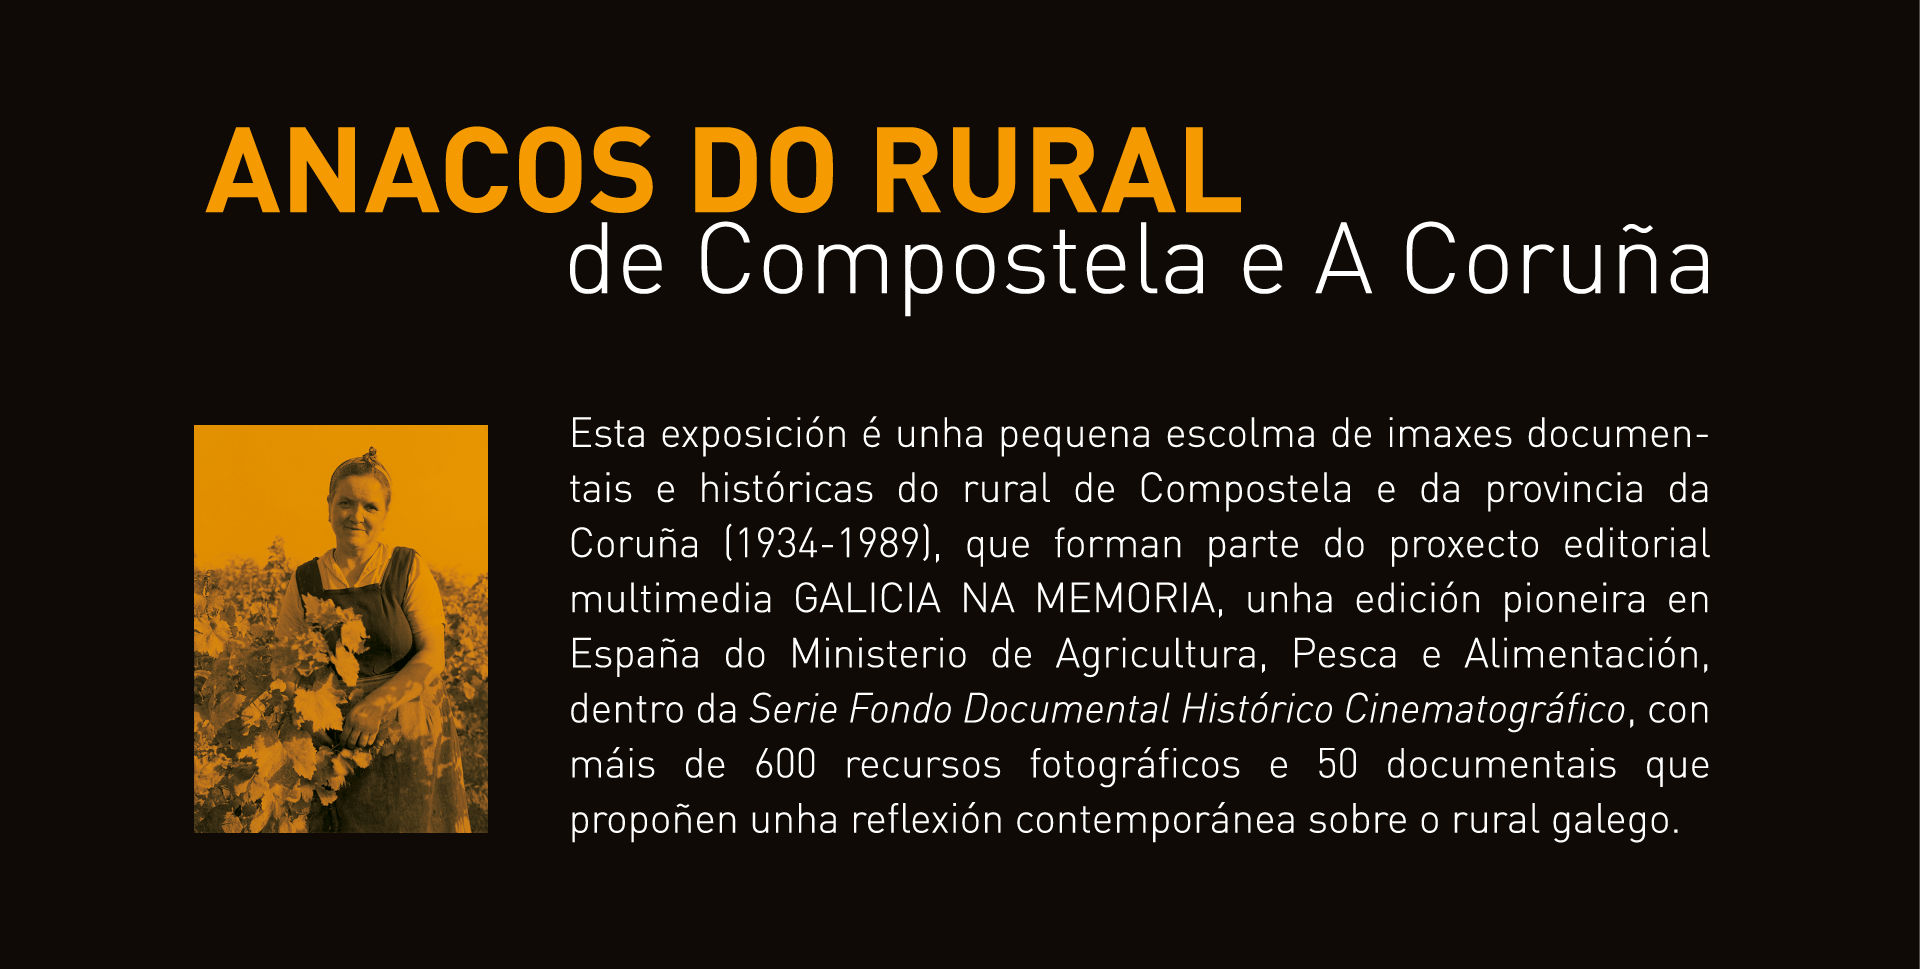 Anacos do Rural